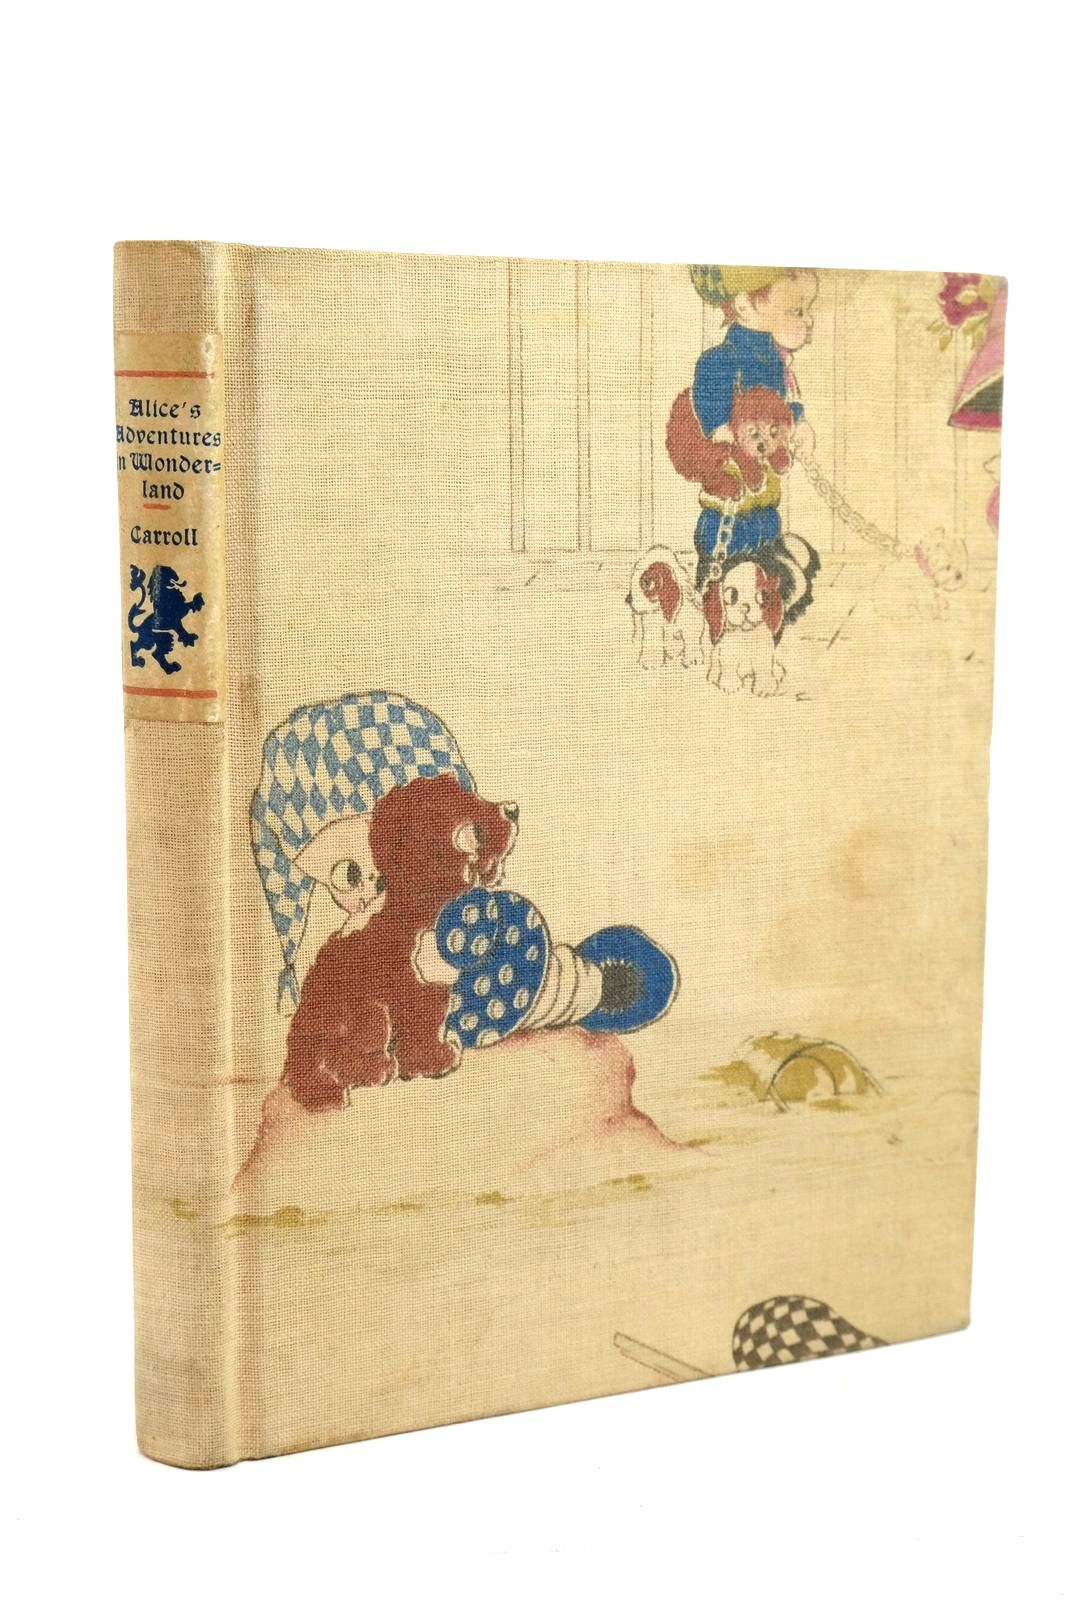 Photo of ALICE'S ADVENTURES IN WONDERLAND written by Carroll, Lewis illustrated by Tenniel, John Preston, Chloe published by Henry Altemus Company (STOCK CODE: 1320790)  for sale by Stella & Rose's Books